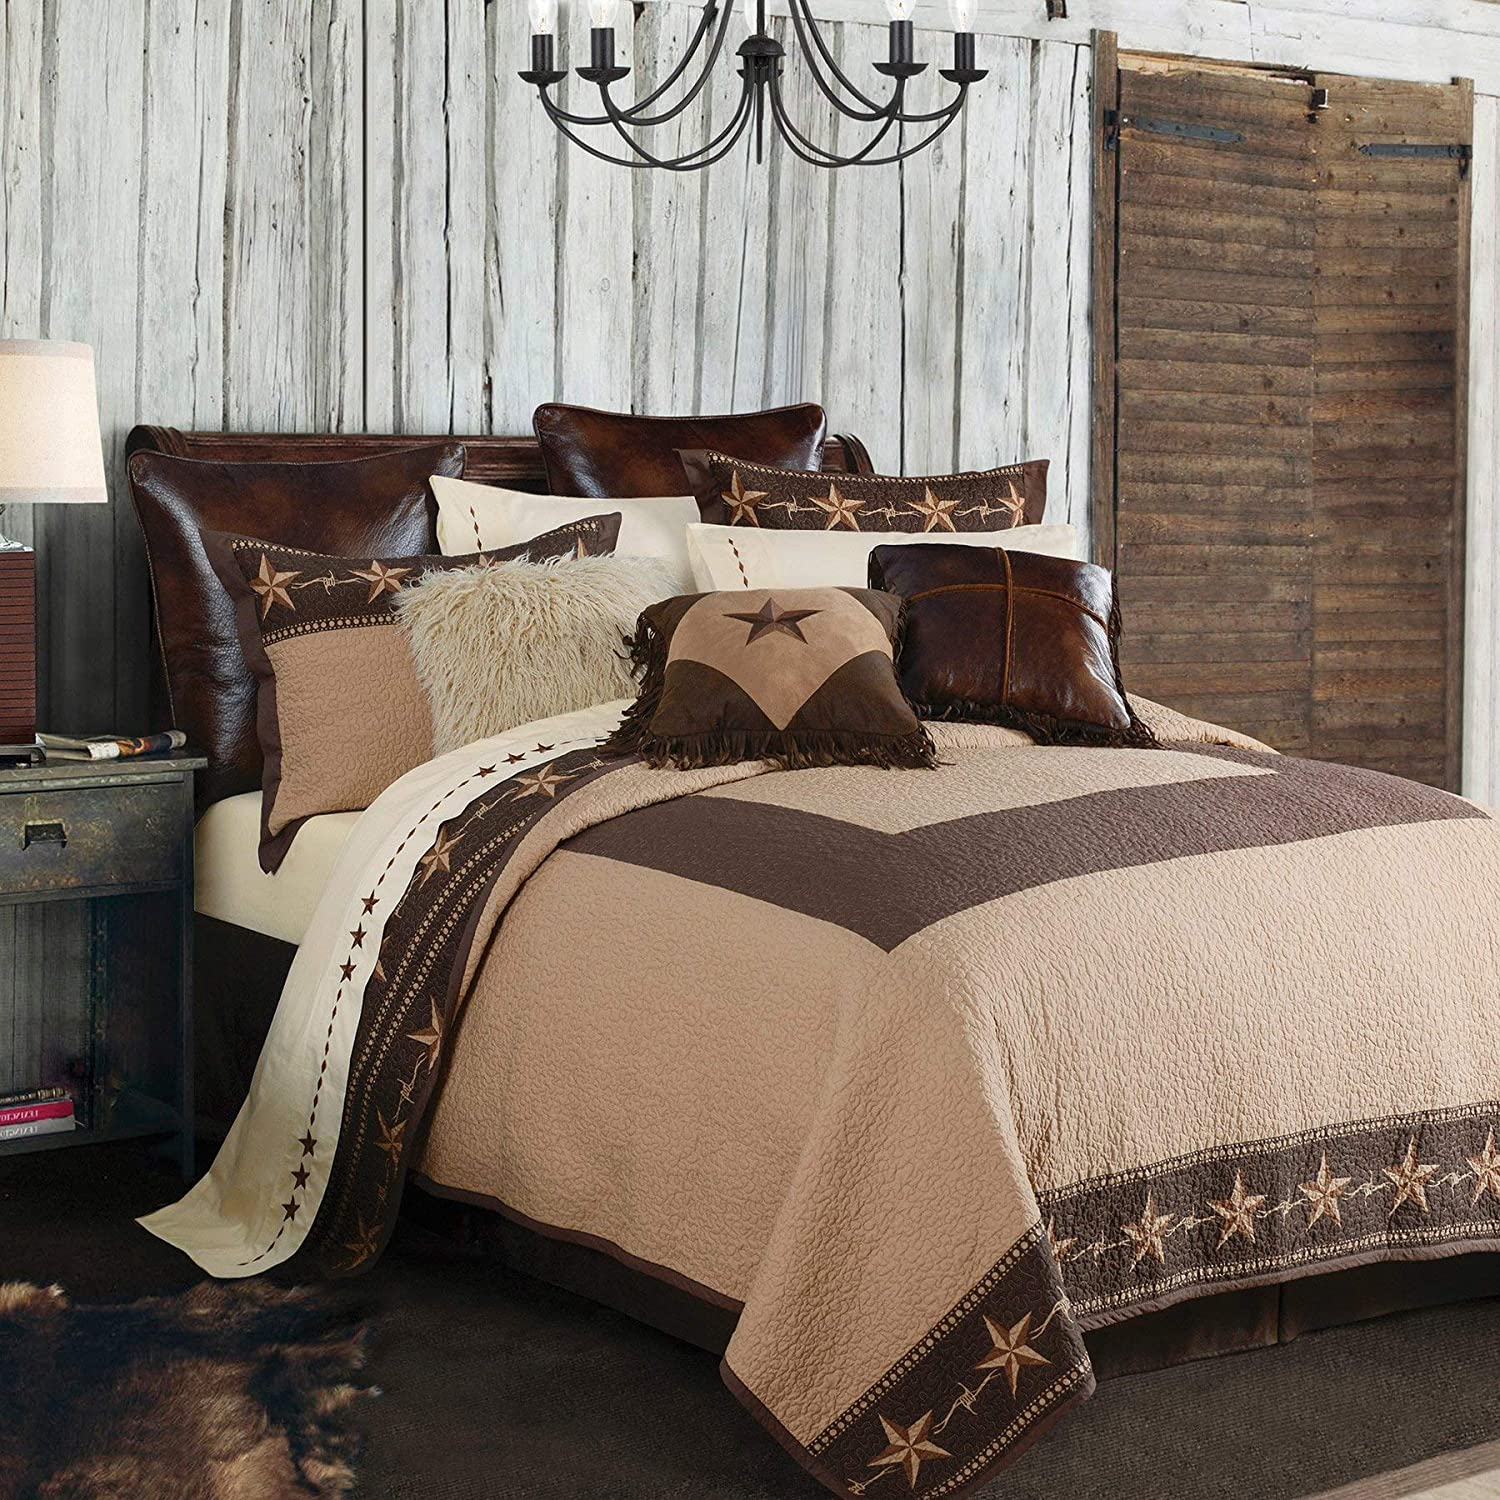 HiEnd Accents Star Ranch Reversible Western Cotton Quilt Set, Full/Queen, Tan & Brown, 3 PC